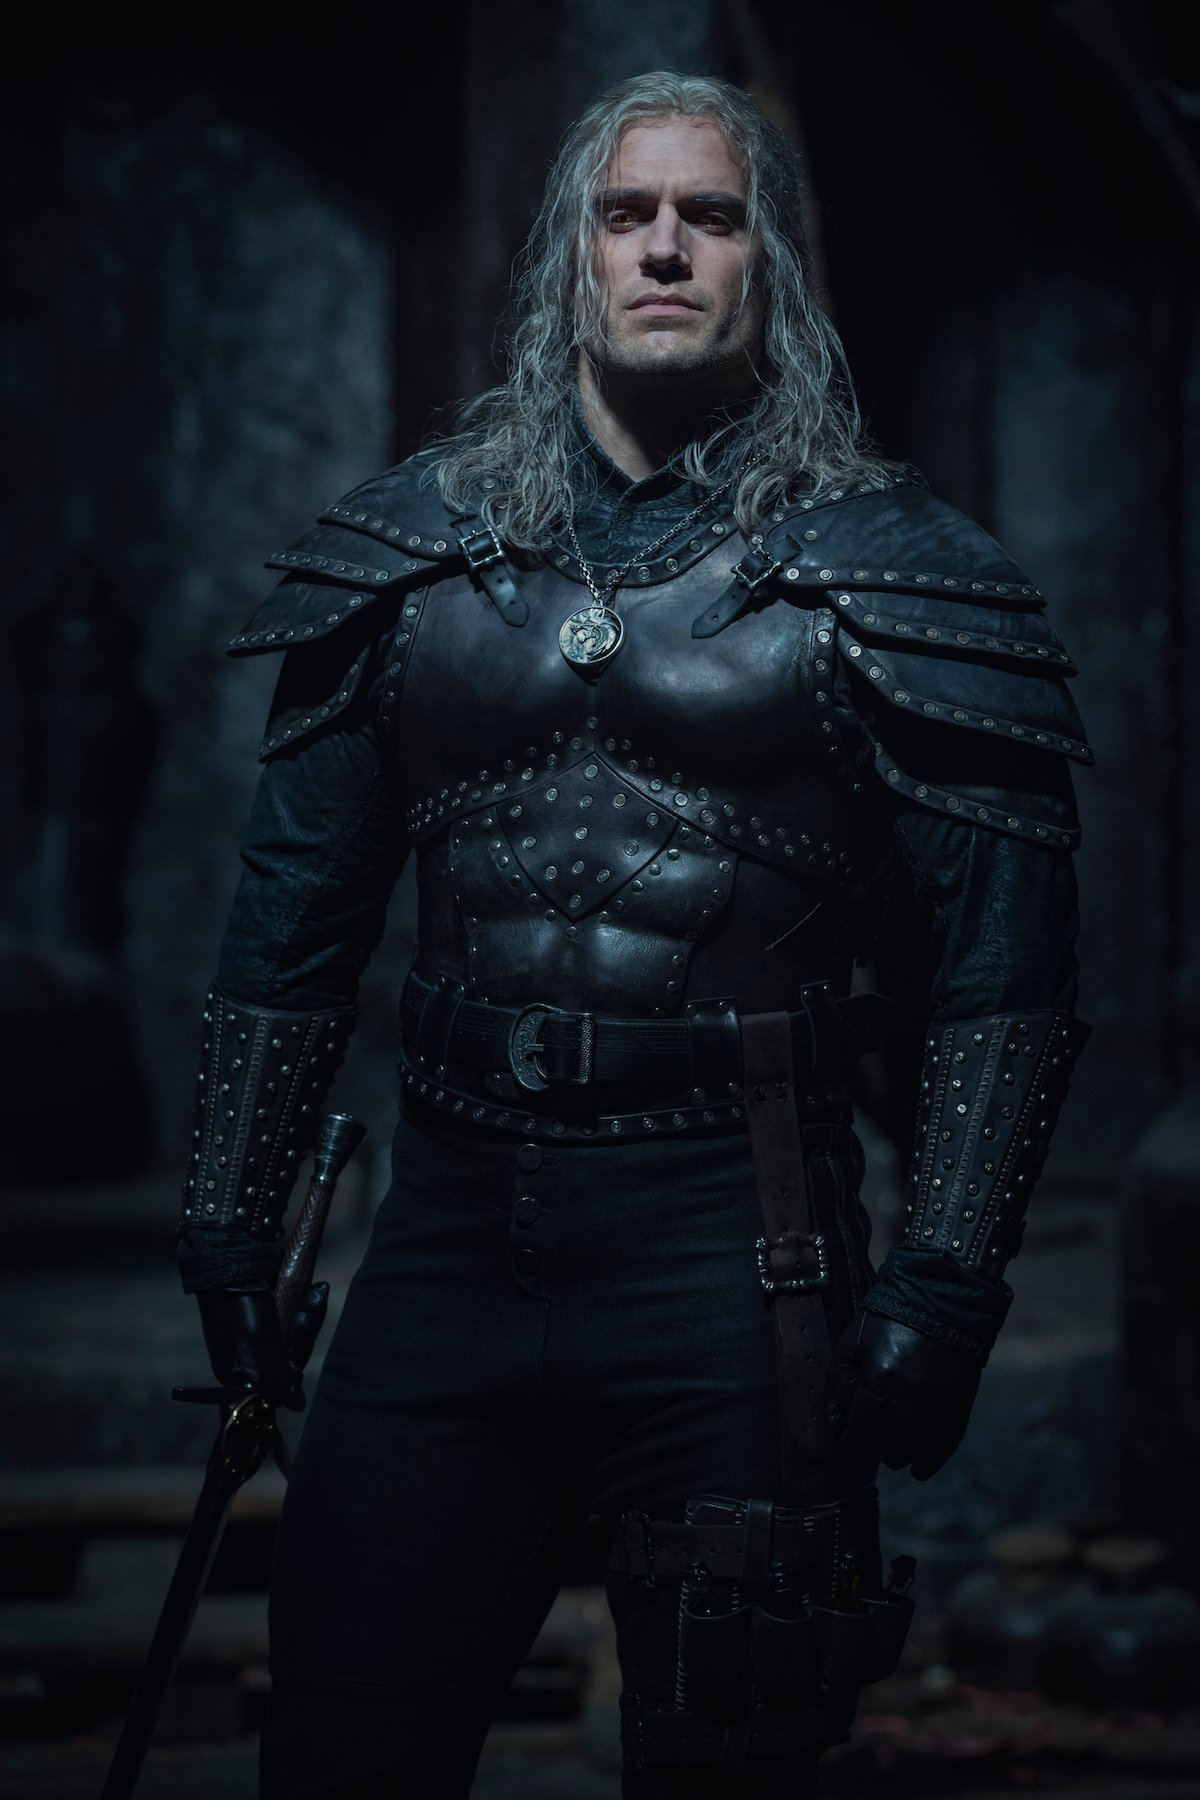 henry cavill season 2 geralt the witcher armor netflix